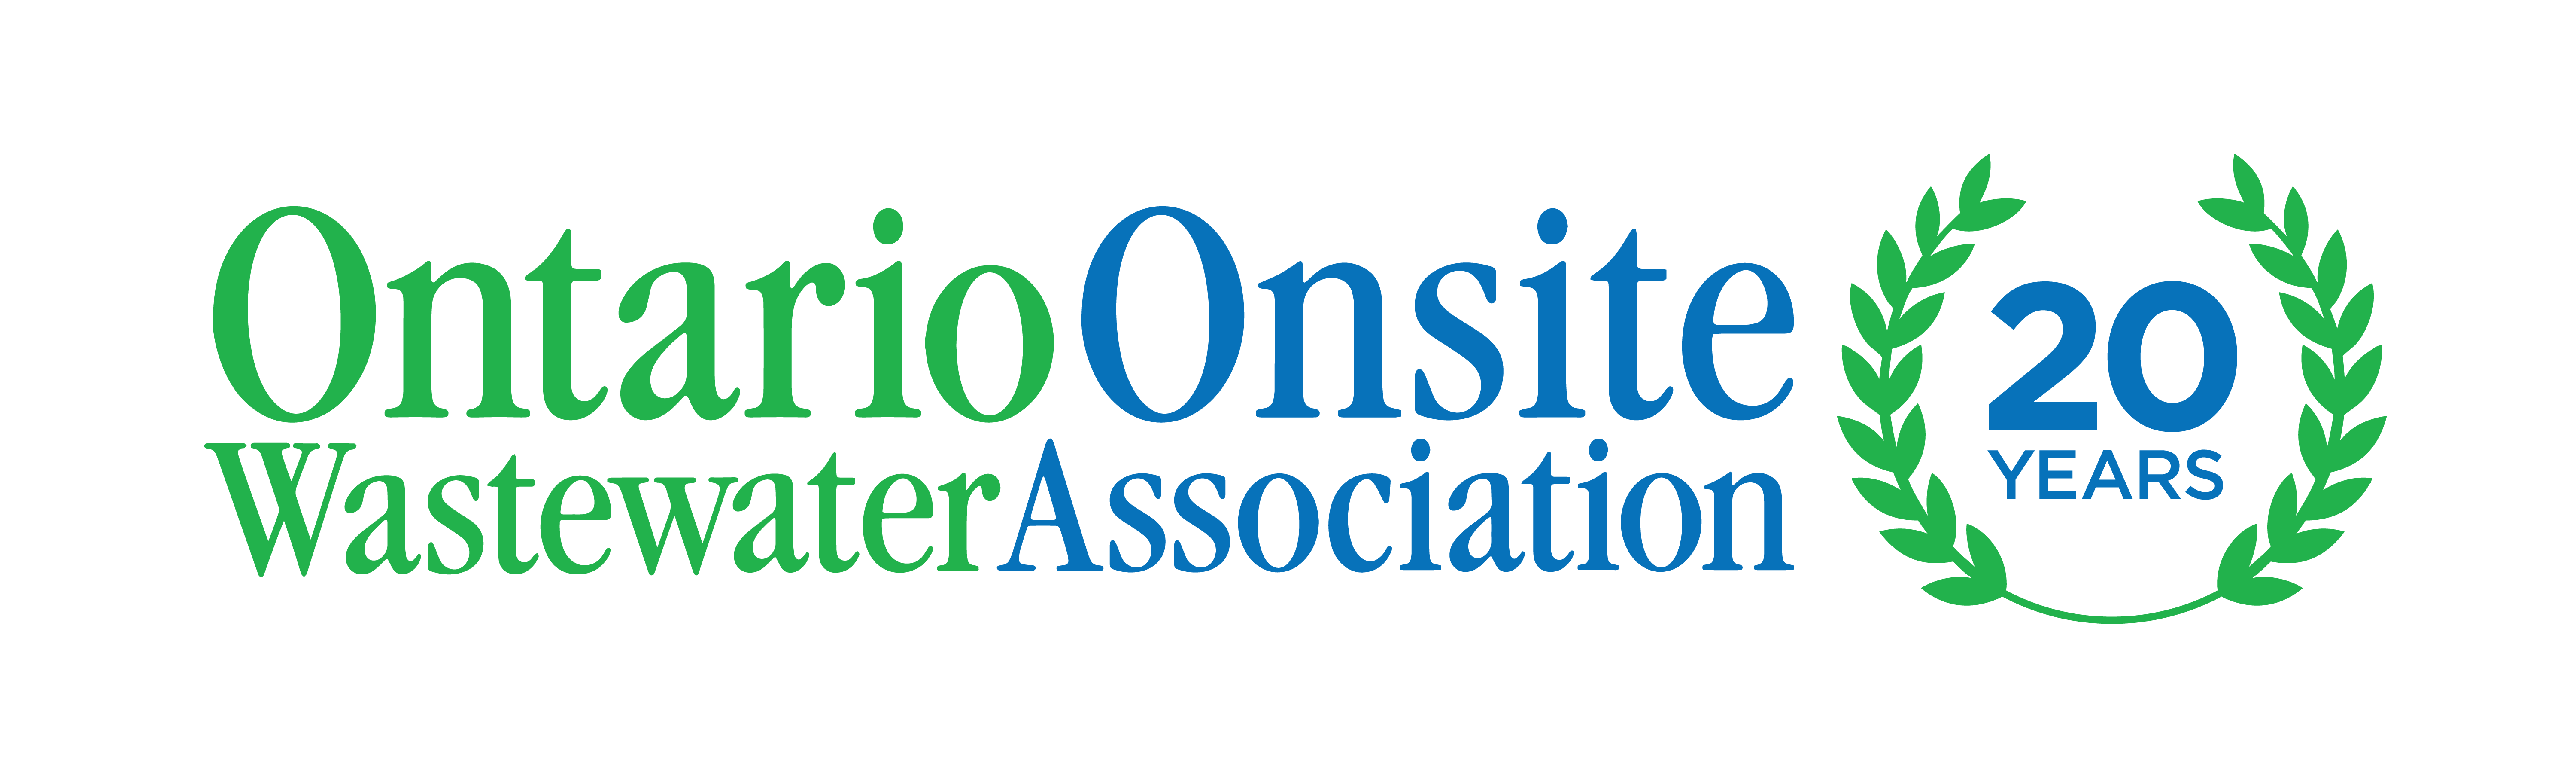 Ontario Onsite Wastewater Association Logo